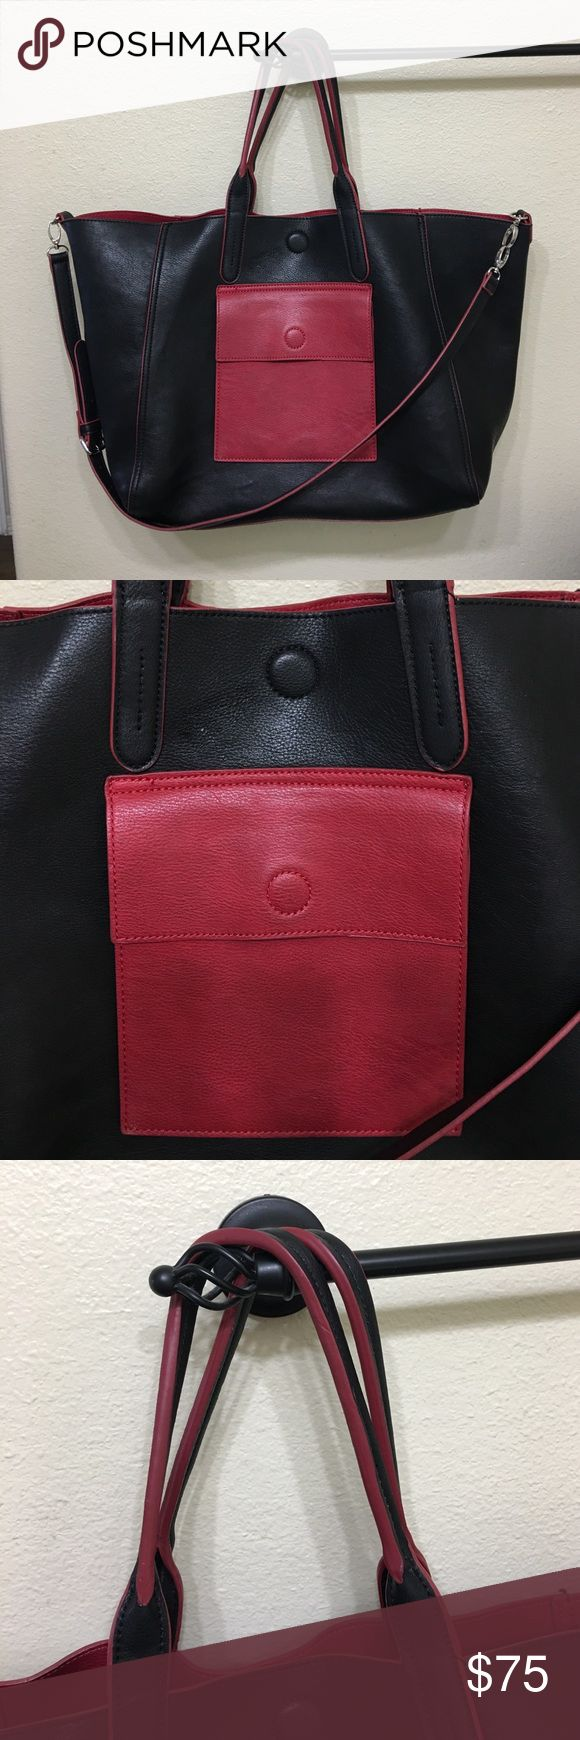 "Neimun Marcus leather tote bag purse reversible Neimun Marcus XL leather tote bag purse reversible very good condition very light scuffs includes long strap. Measures top flat 22"" long 13.25"" tall 7"" wide handle drop 8"" Neiman Marcus Bags Totes"